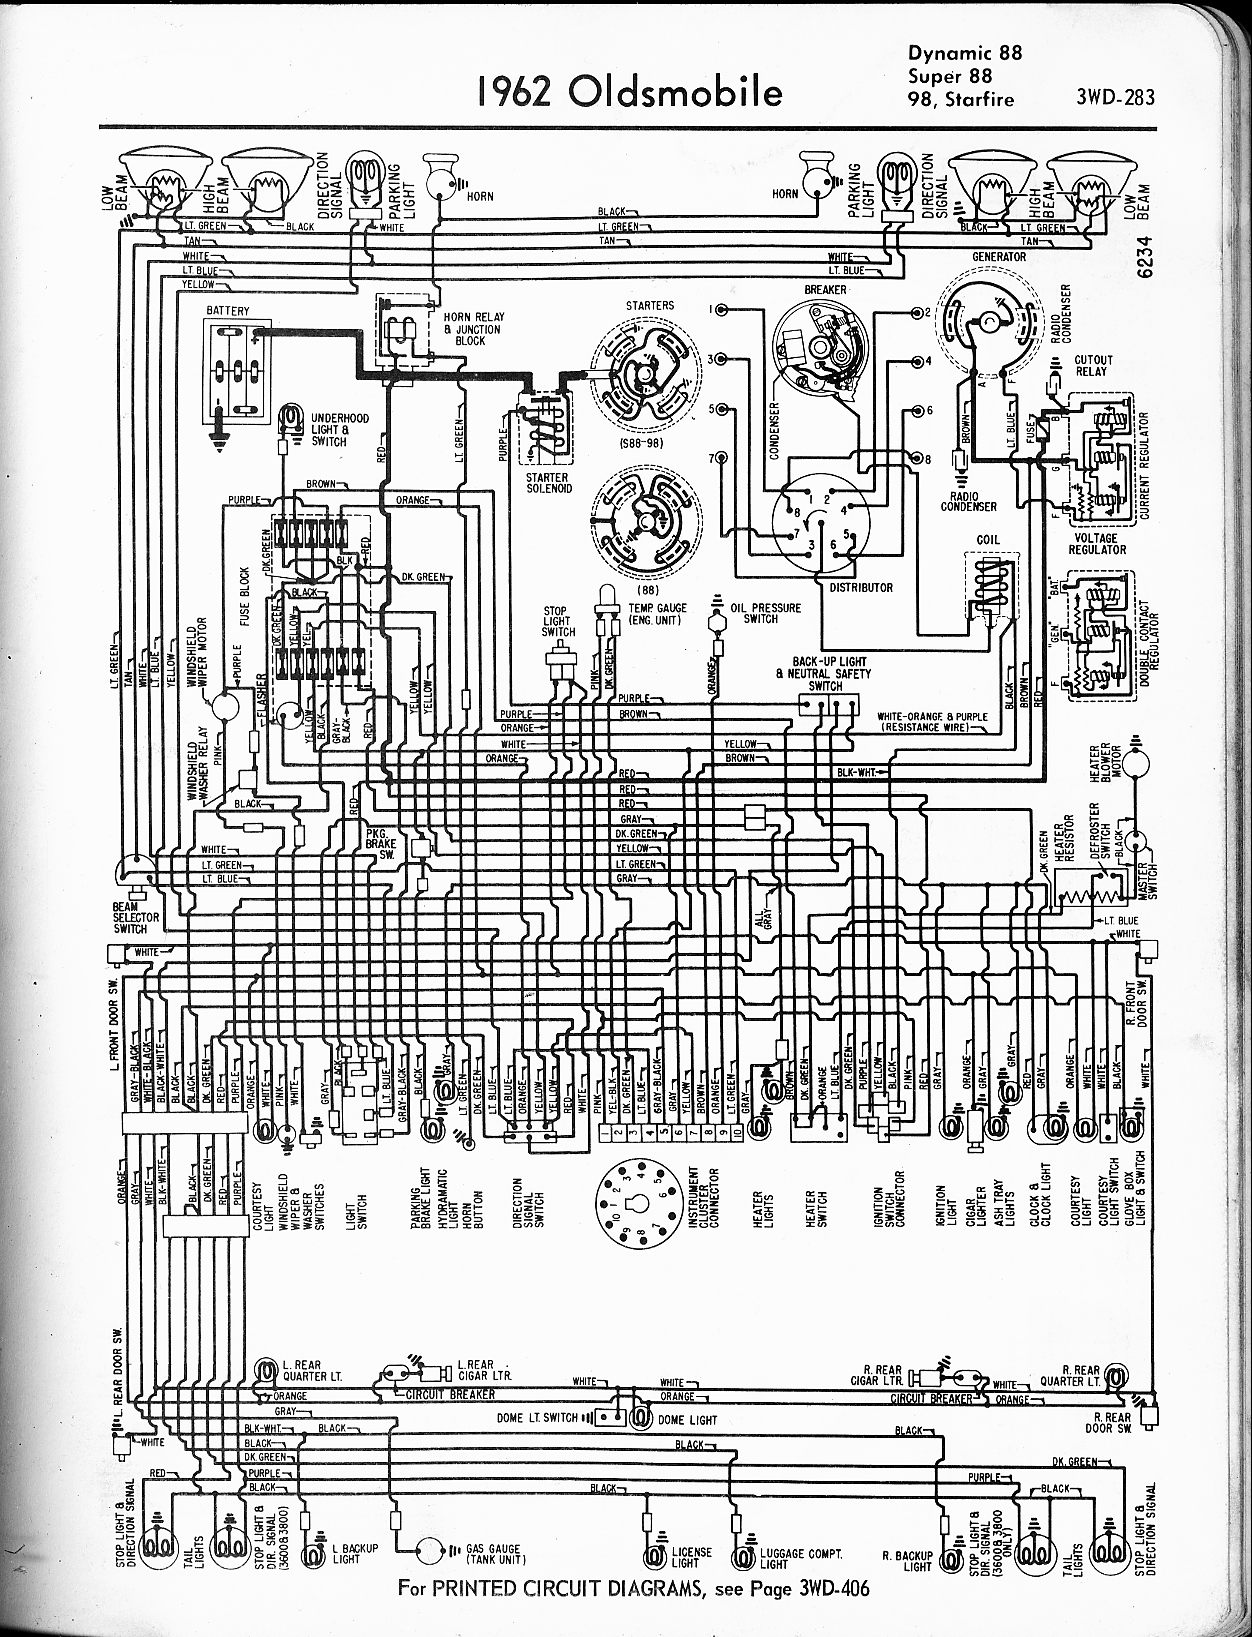 oldsmobile wiring diagrams the old car manual project rh  oldcarmanualproject com classic car diagram Simple Car